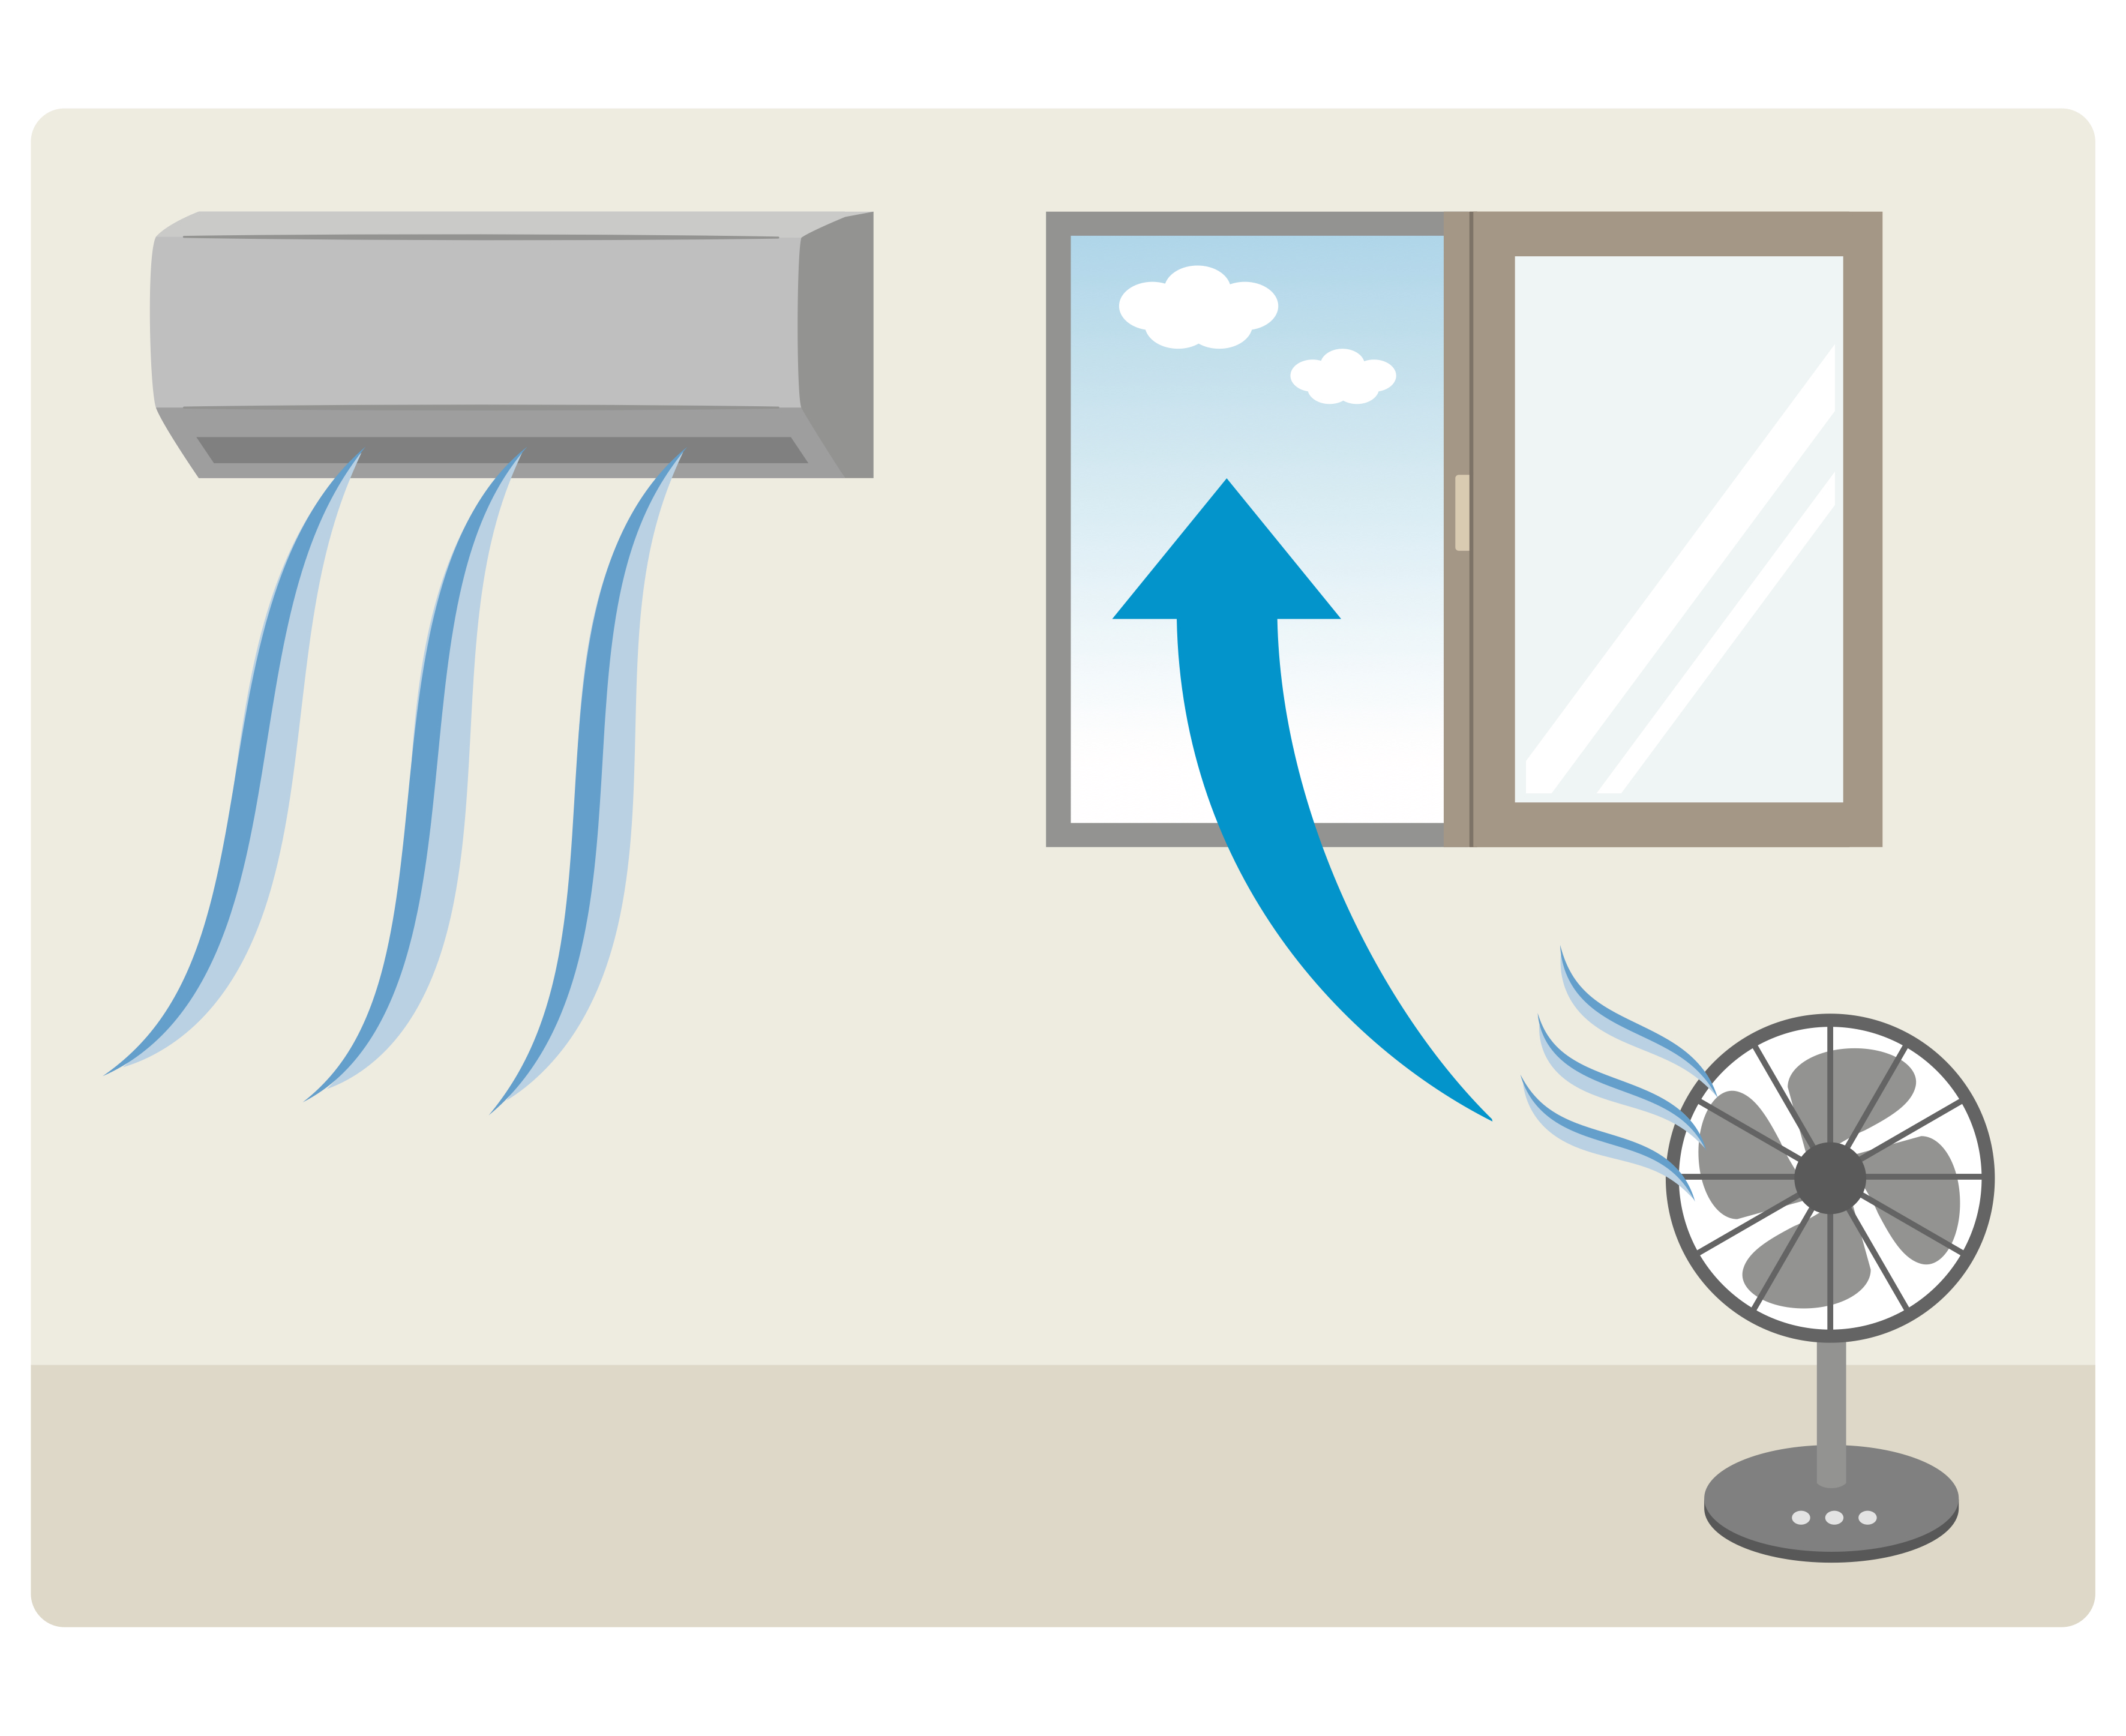 A drawing showing an air conditioner blowing air into a building and a fan blowing air from an open window.